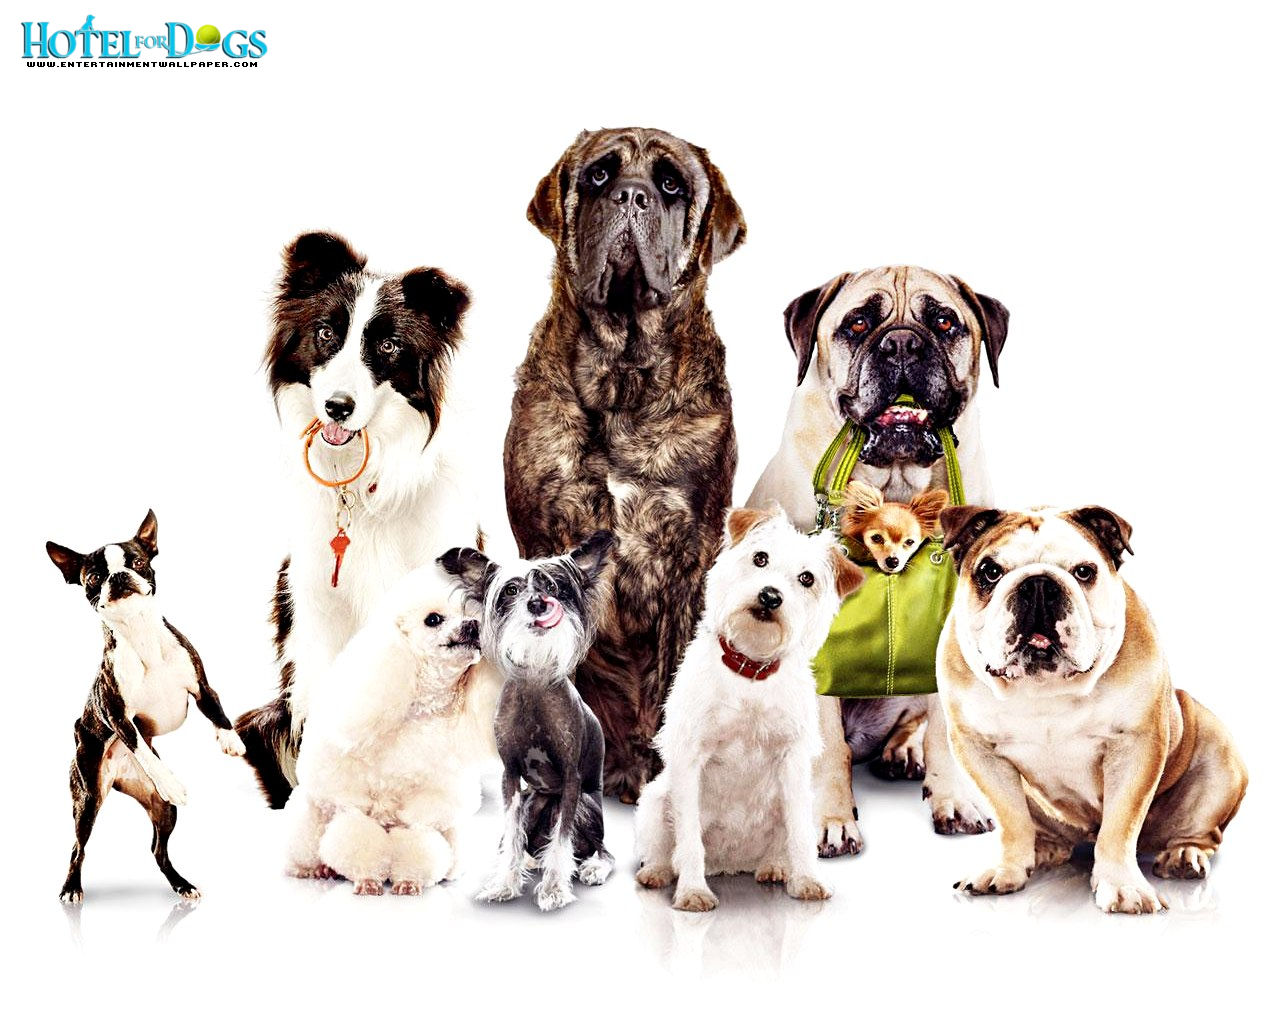 Dogs Wallpaper Dog Wallpaper Amazing Wallpapers